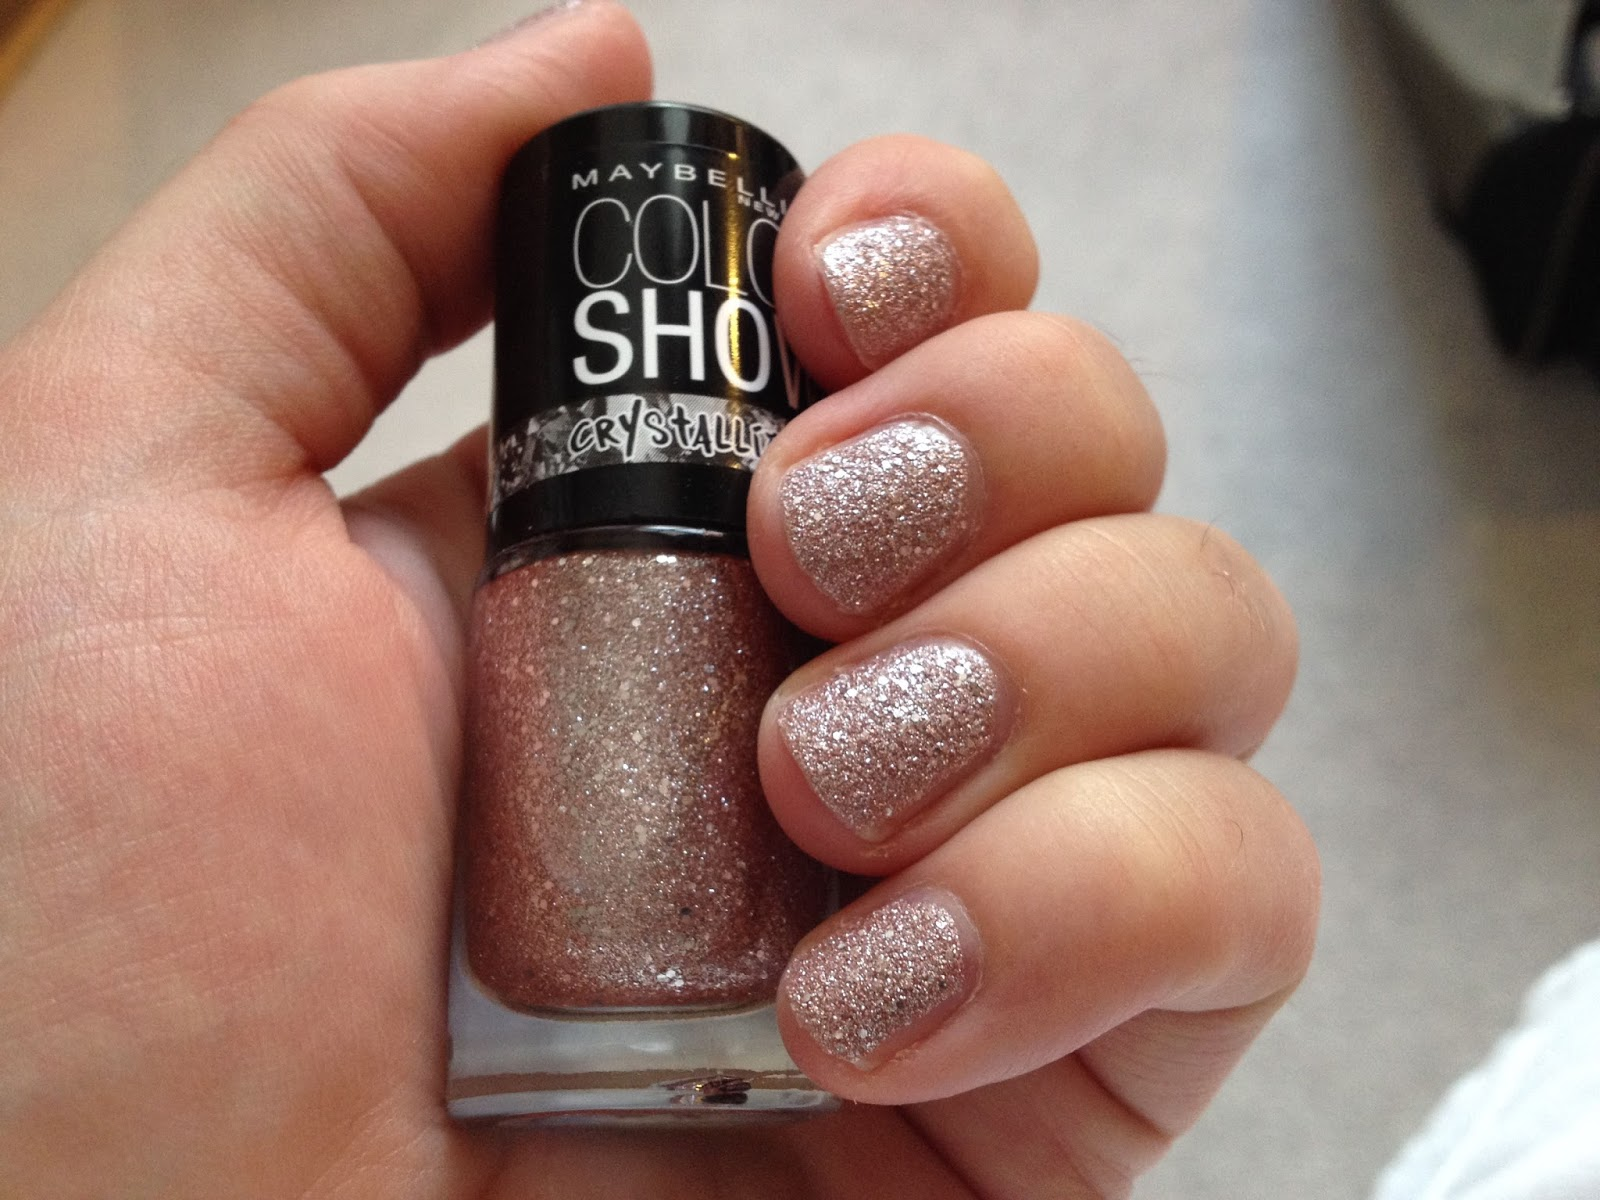 Maybelline Color Show Crystallise Rose Chic nail polish